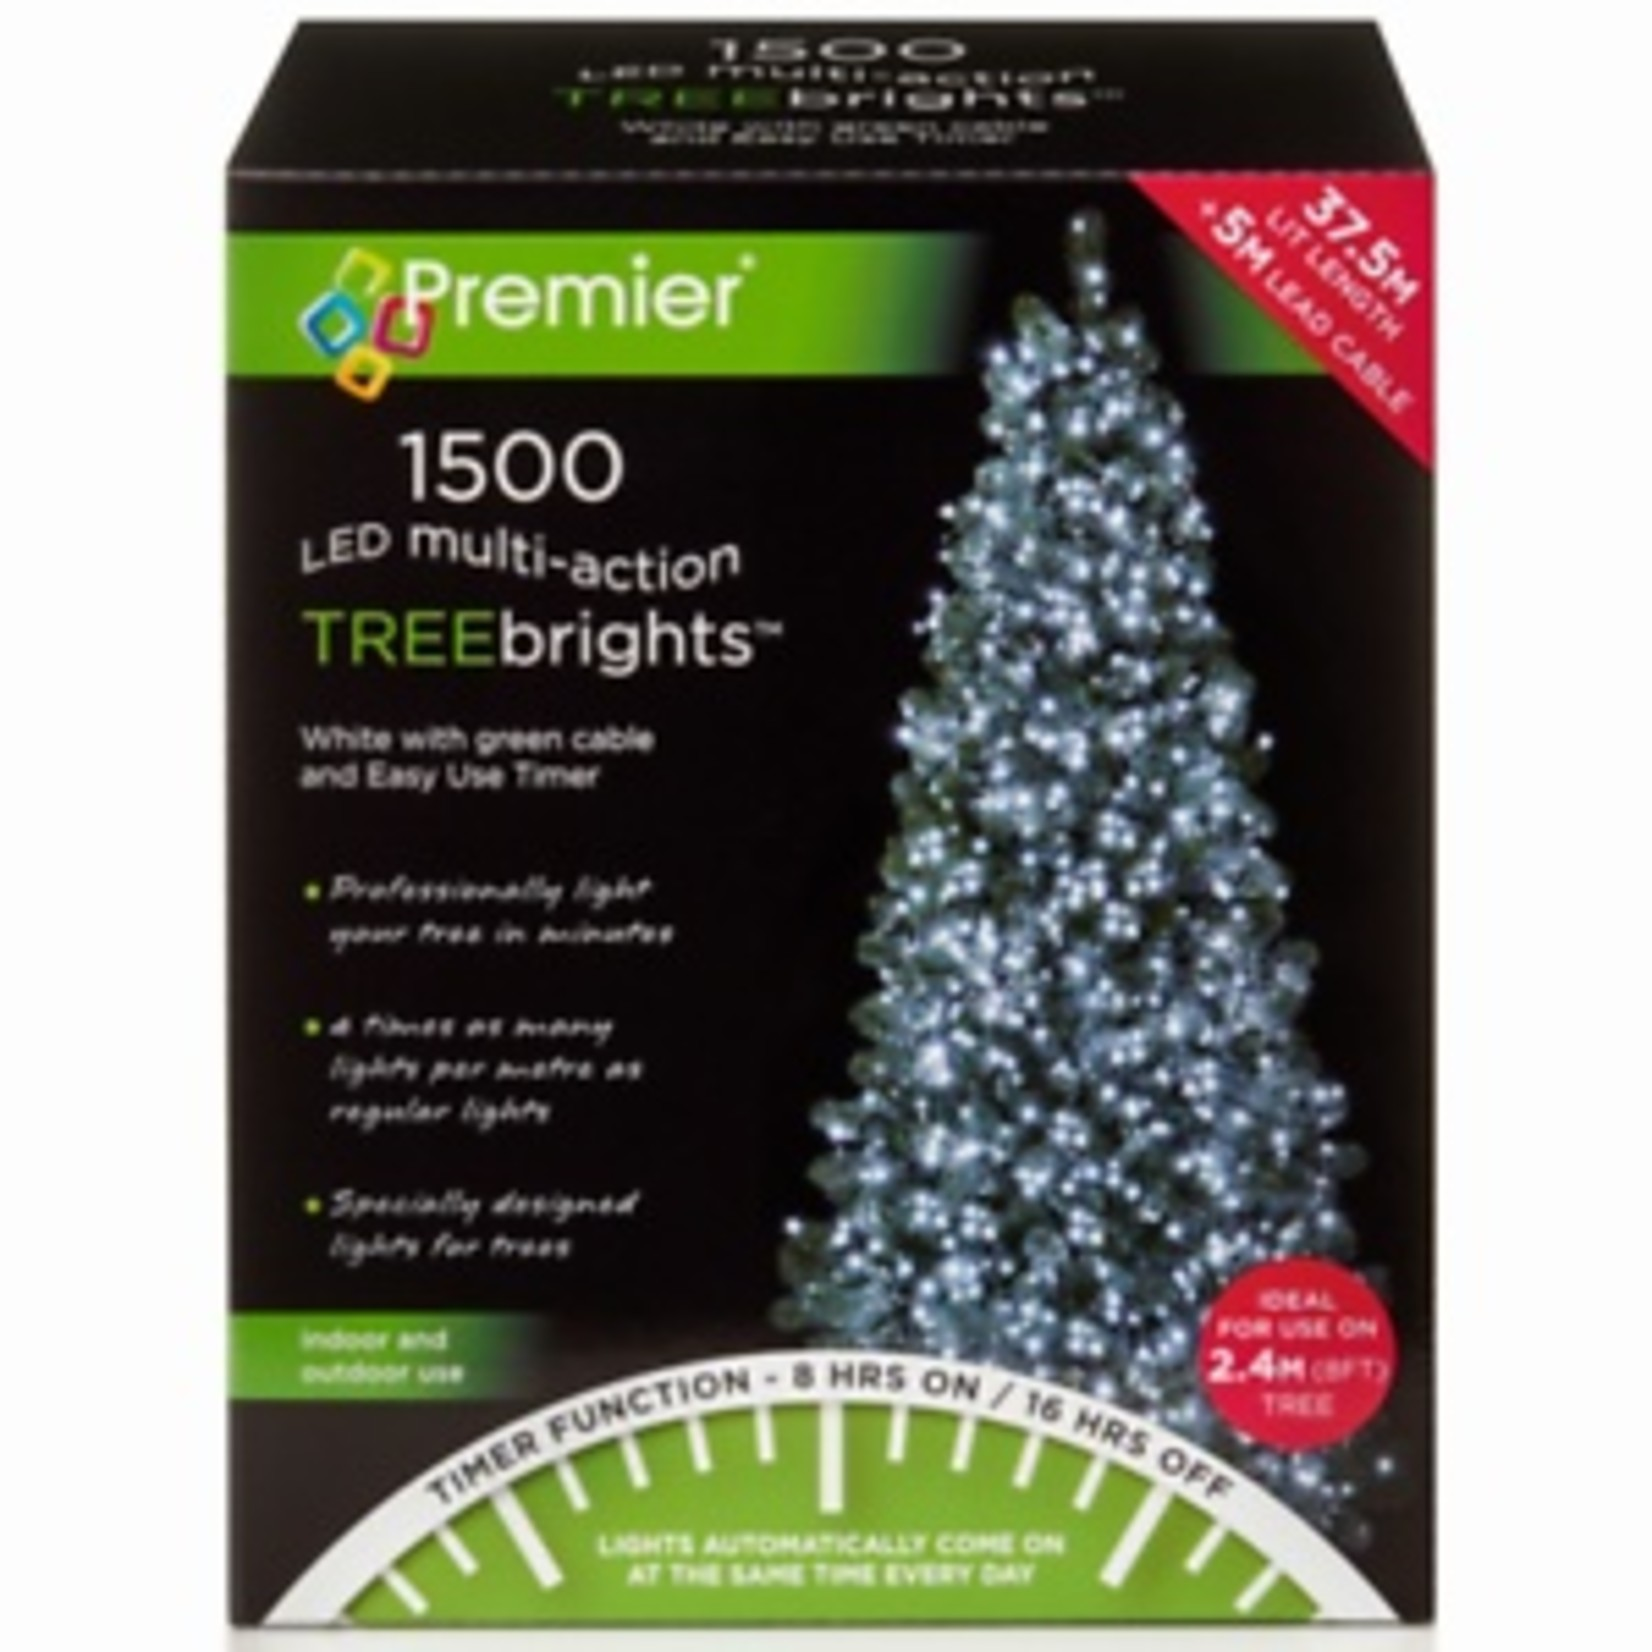 1500 M-A Led TreeBrights Timer White